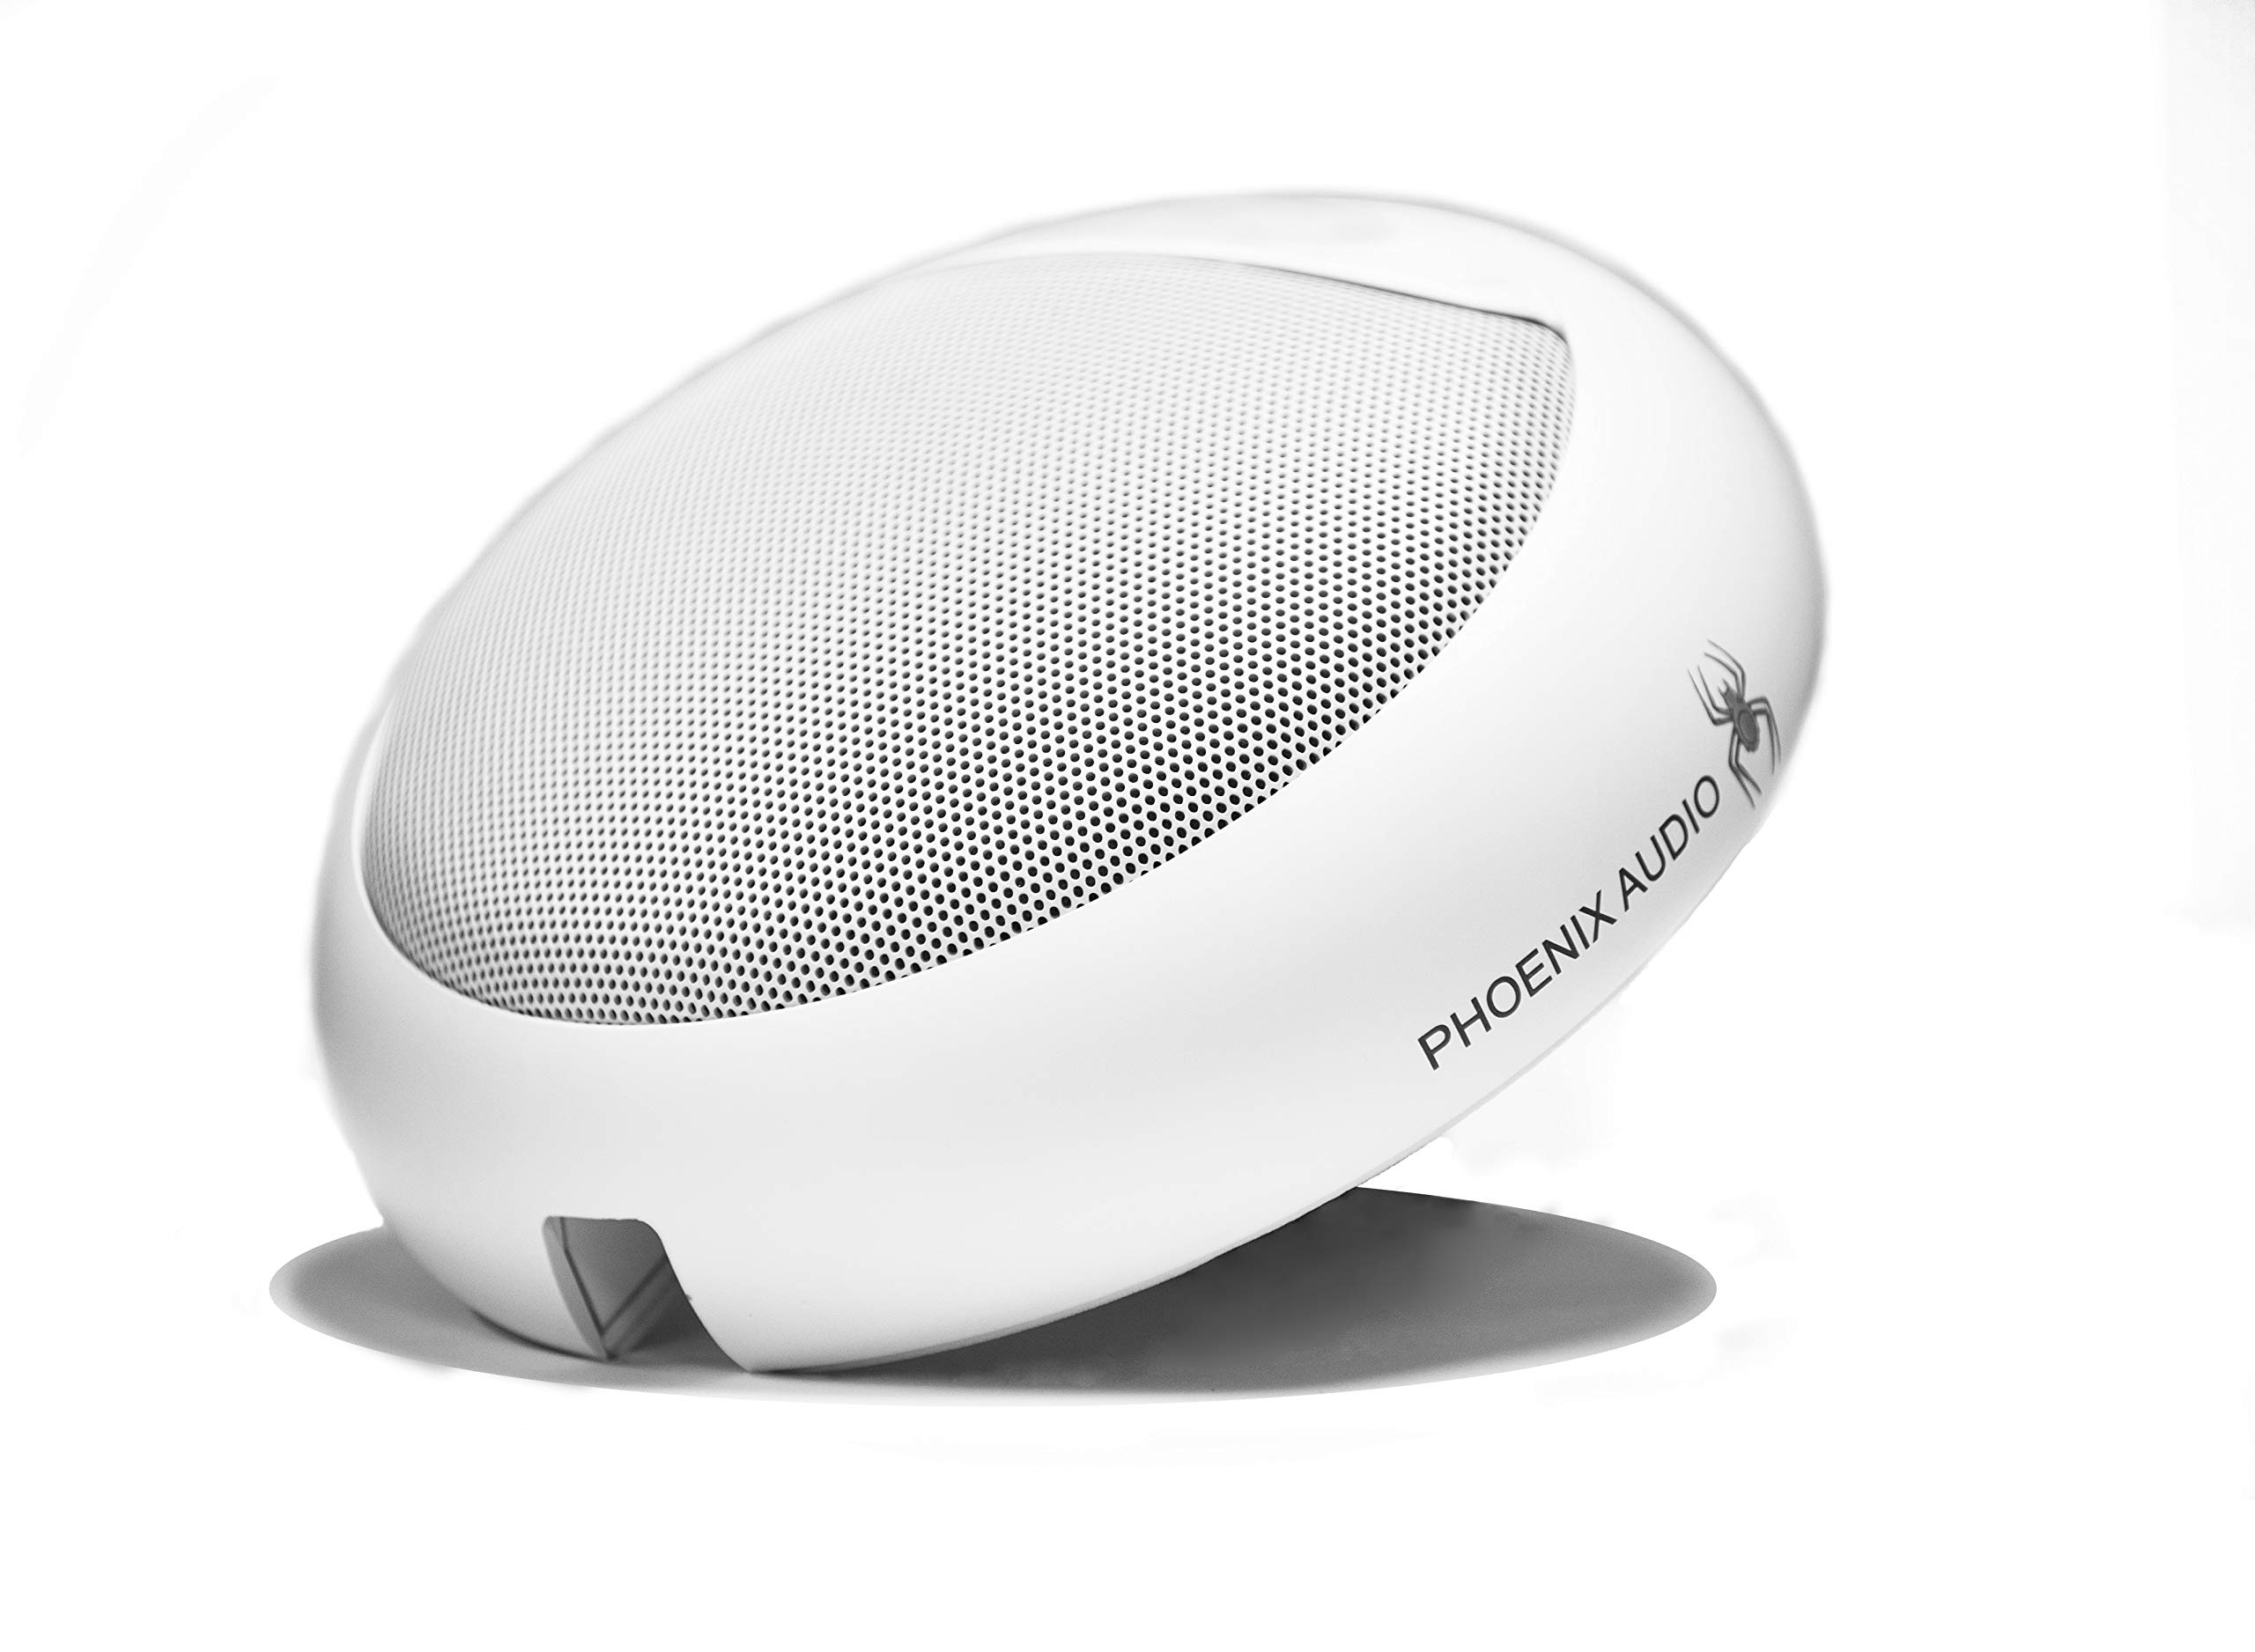 Phoenix Audio Smart Spider MT503 White – USB Table Microphone for Video Conferencing - Four Microphone Beamforming Arrays - Echo Cancelling - Ceiling Mount Available